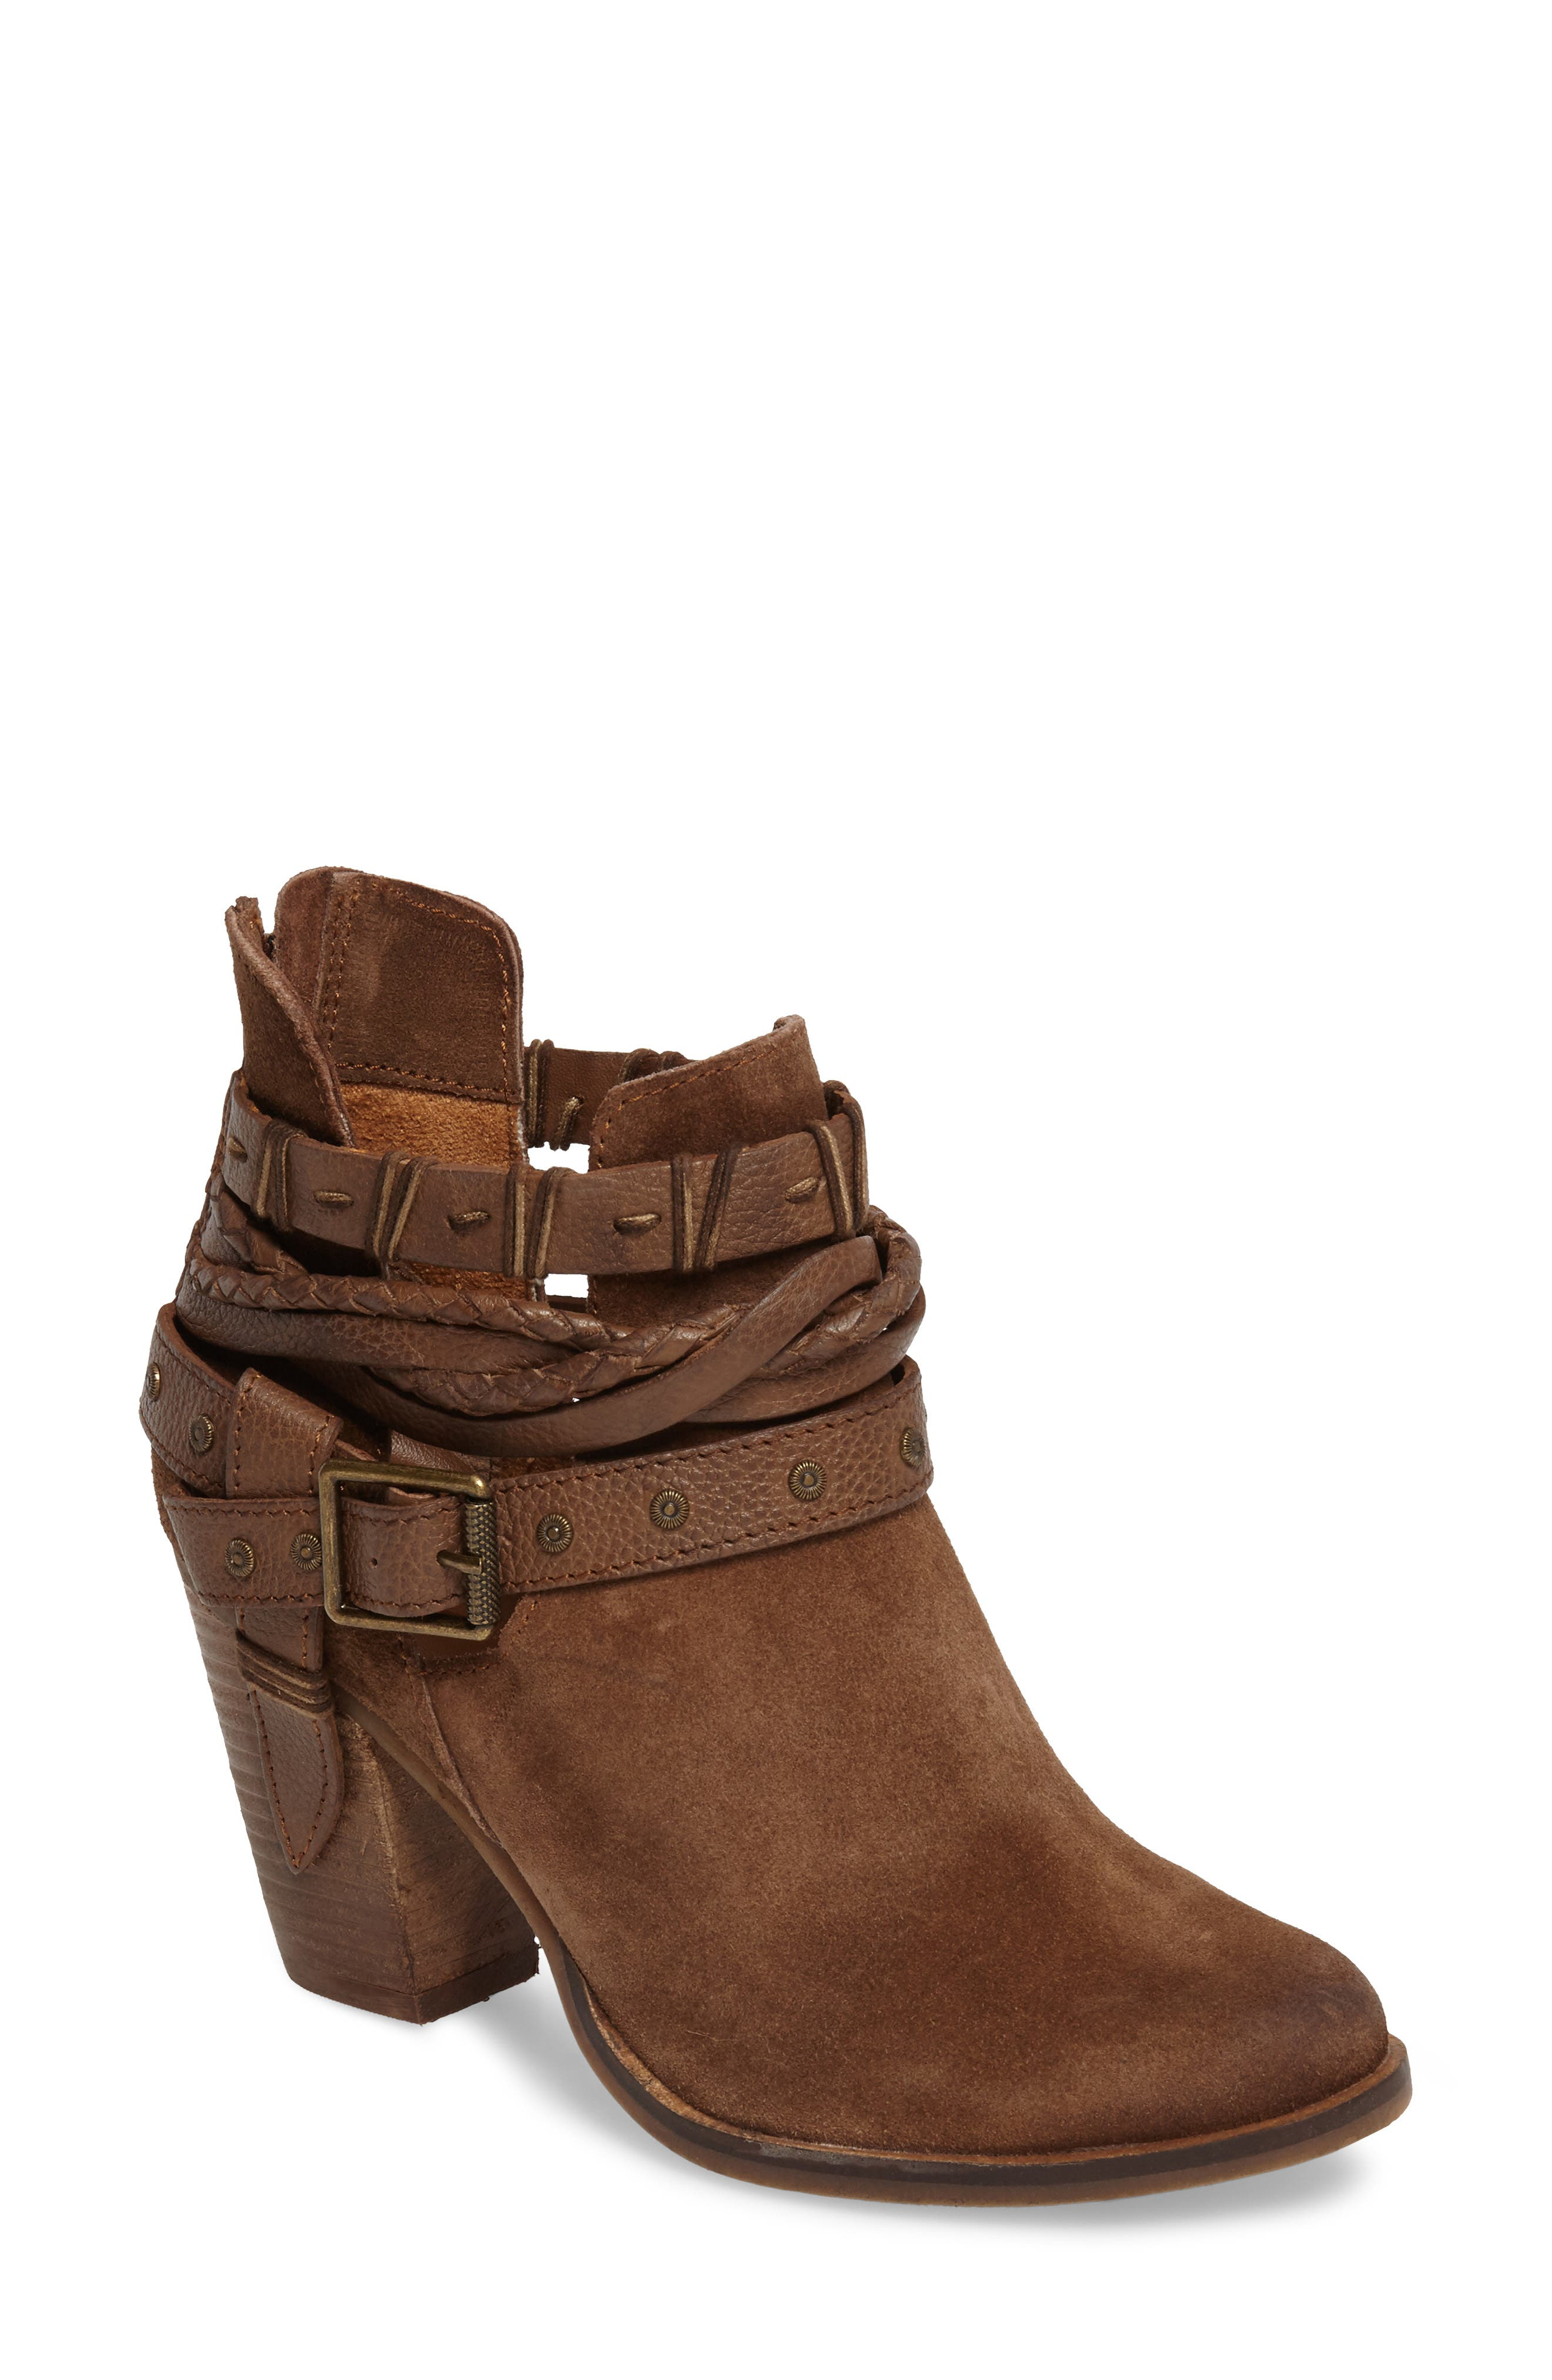 Alternate Image 1 Selected - Naughty Monkey Cuthbert Strappy Bootie (Women)